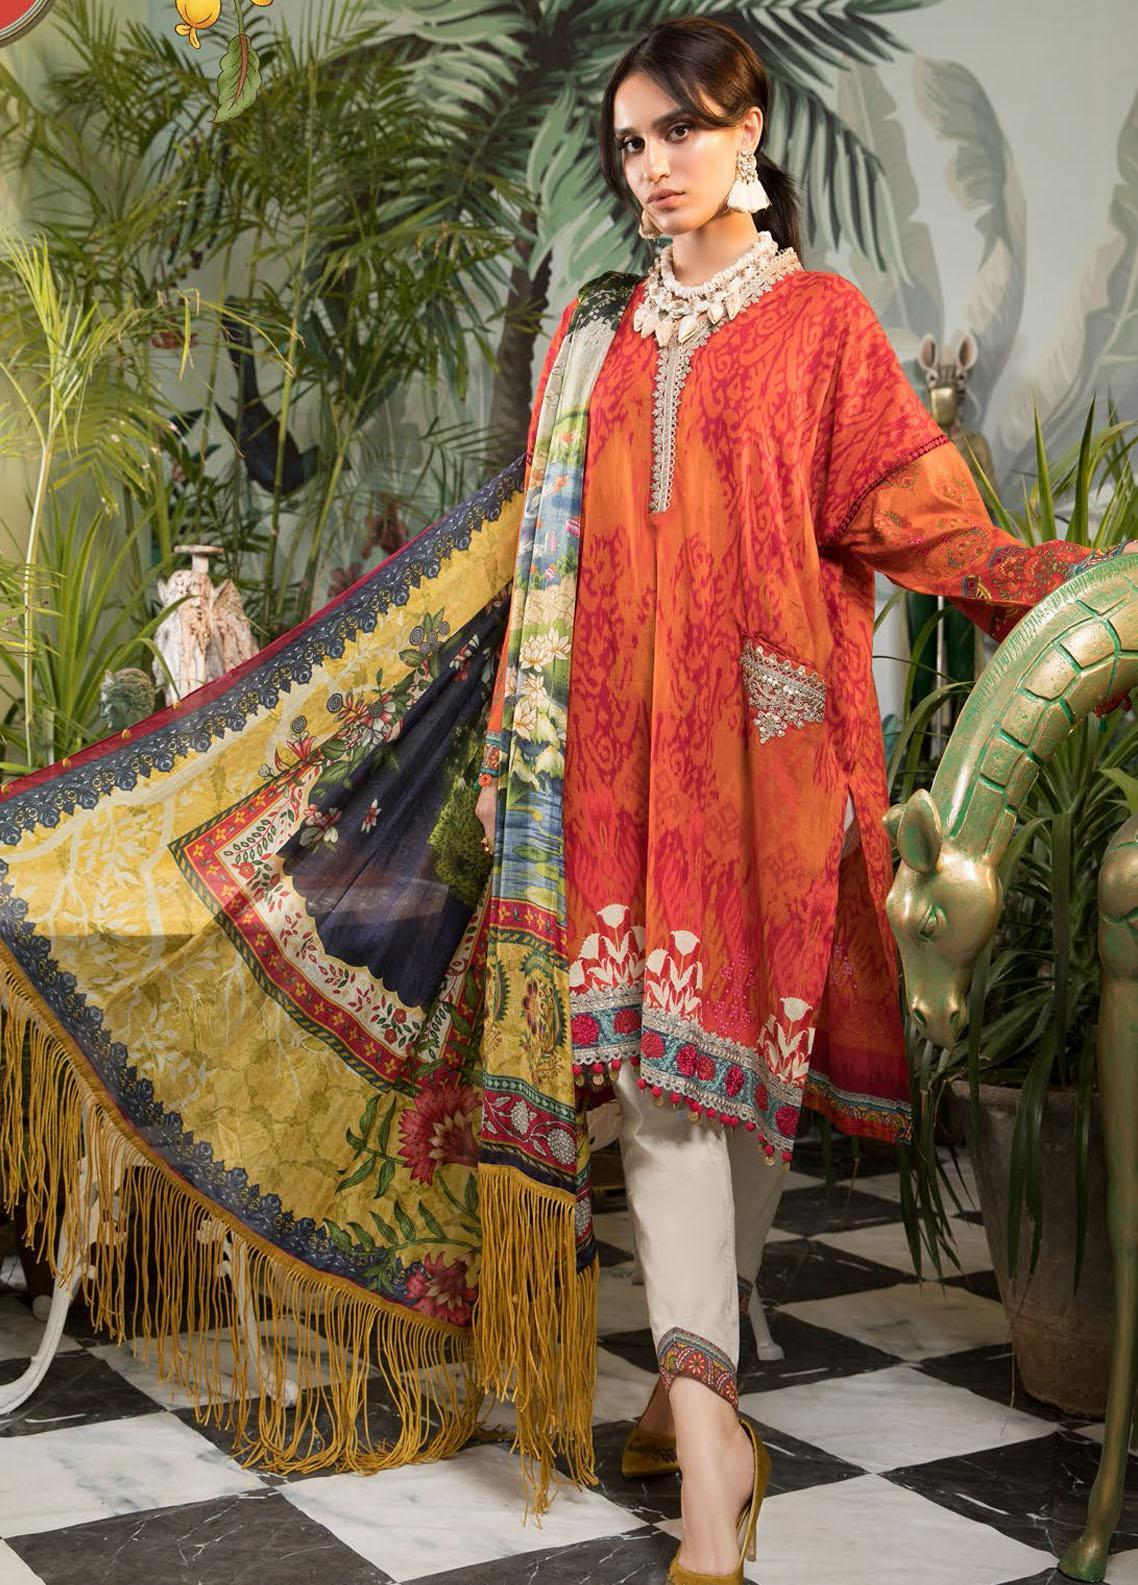 Mprints By Maria B Printed Lawn Suits Unstitched 3 Piece MB21-MP2 1104-B - Summer Collection